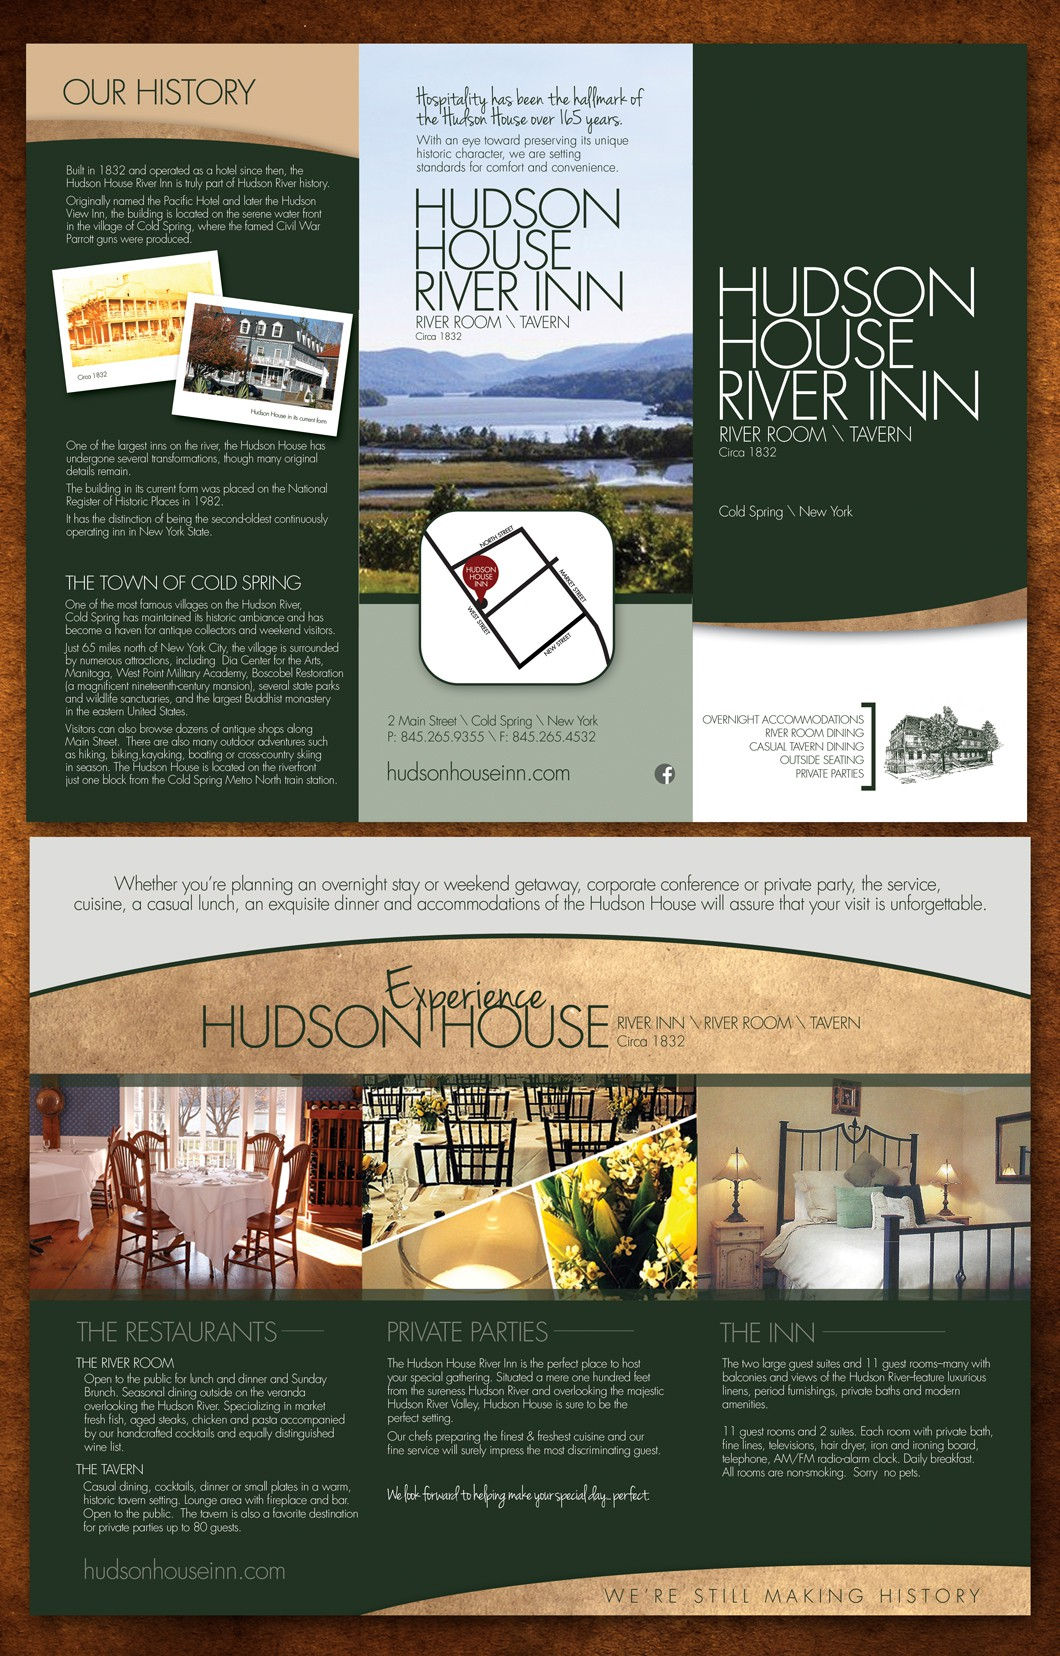 Brochure for Upscale Inn/Restaurant on the HUdson River in New York